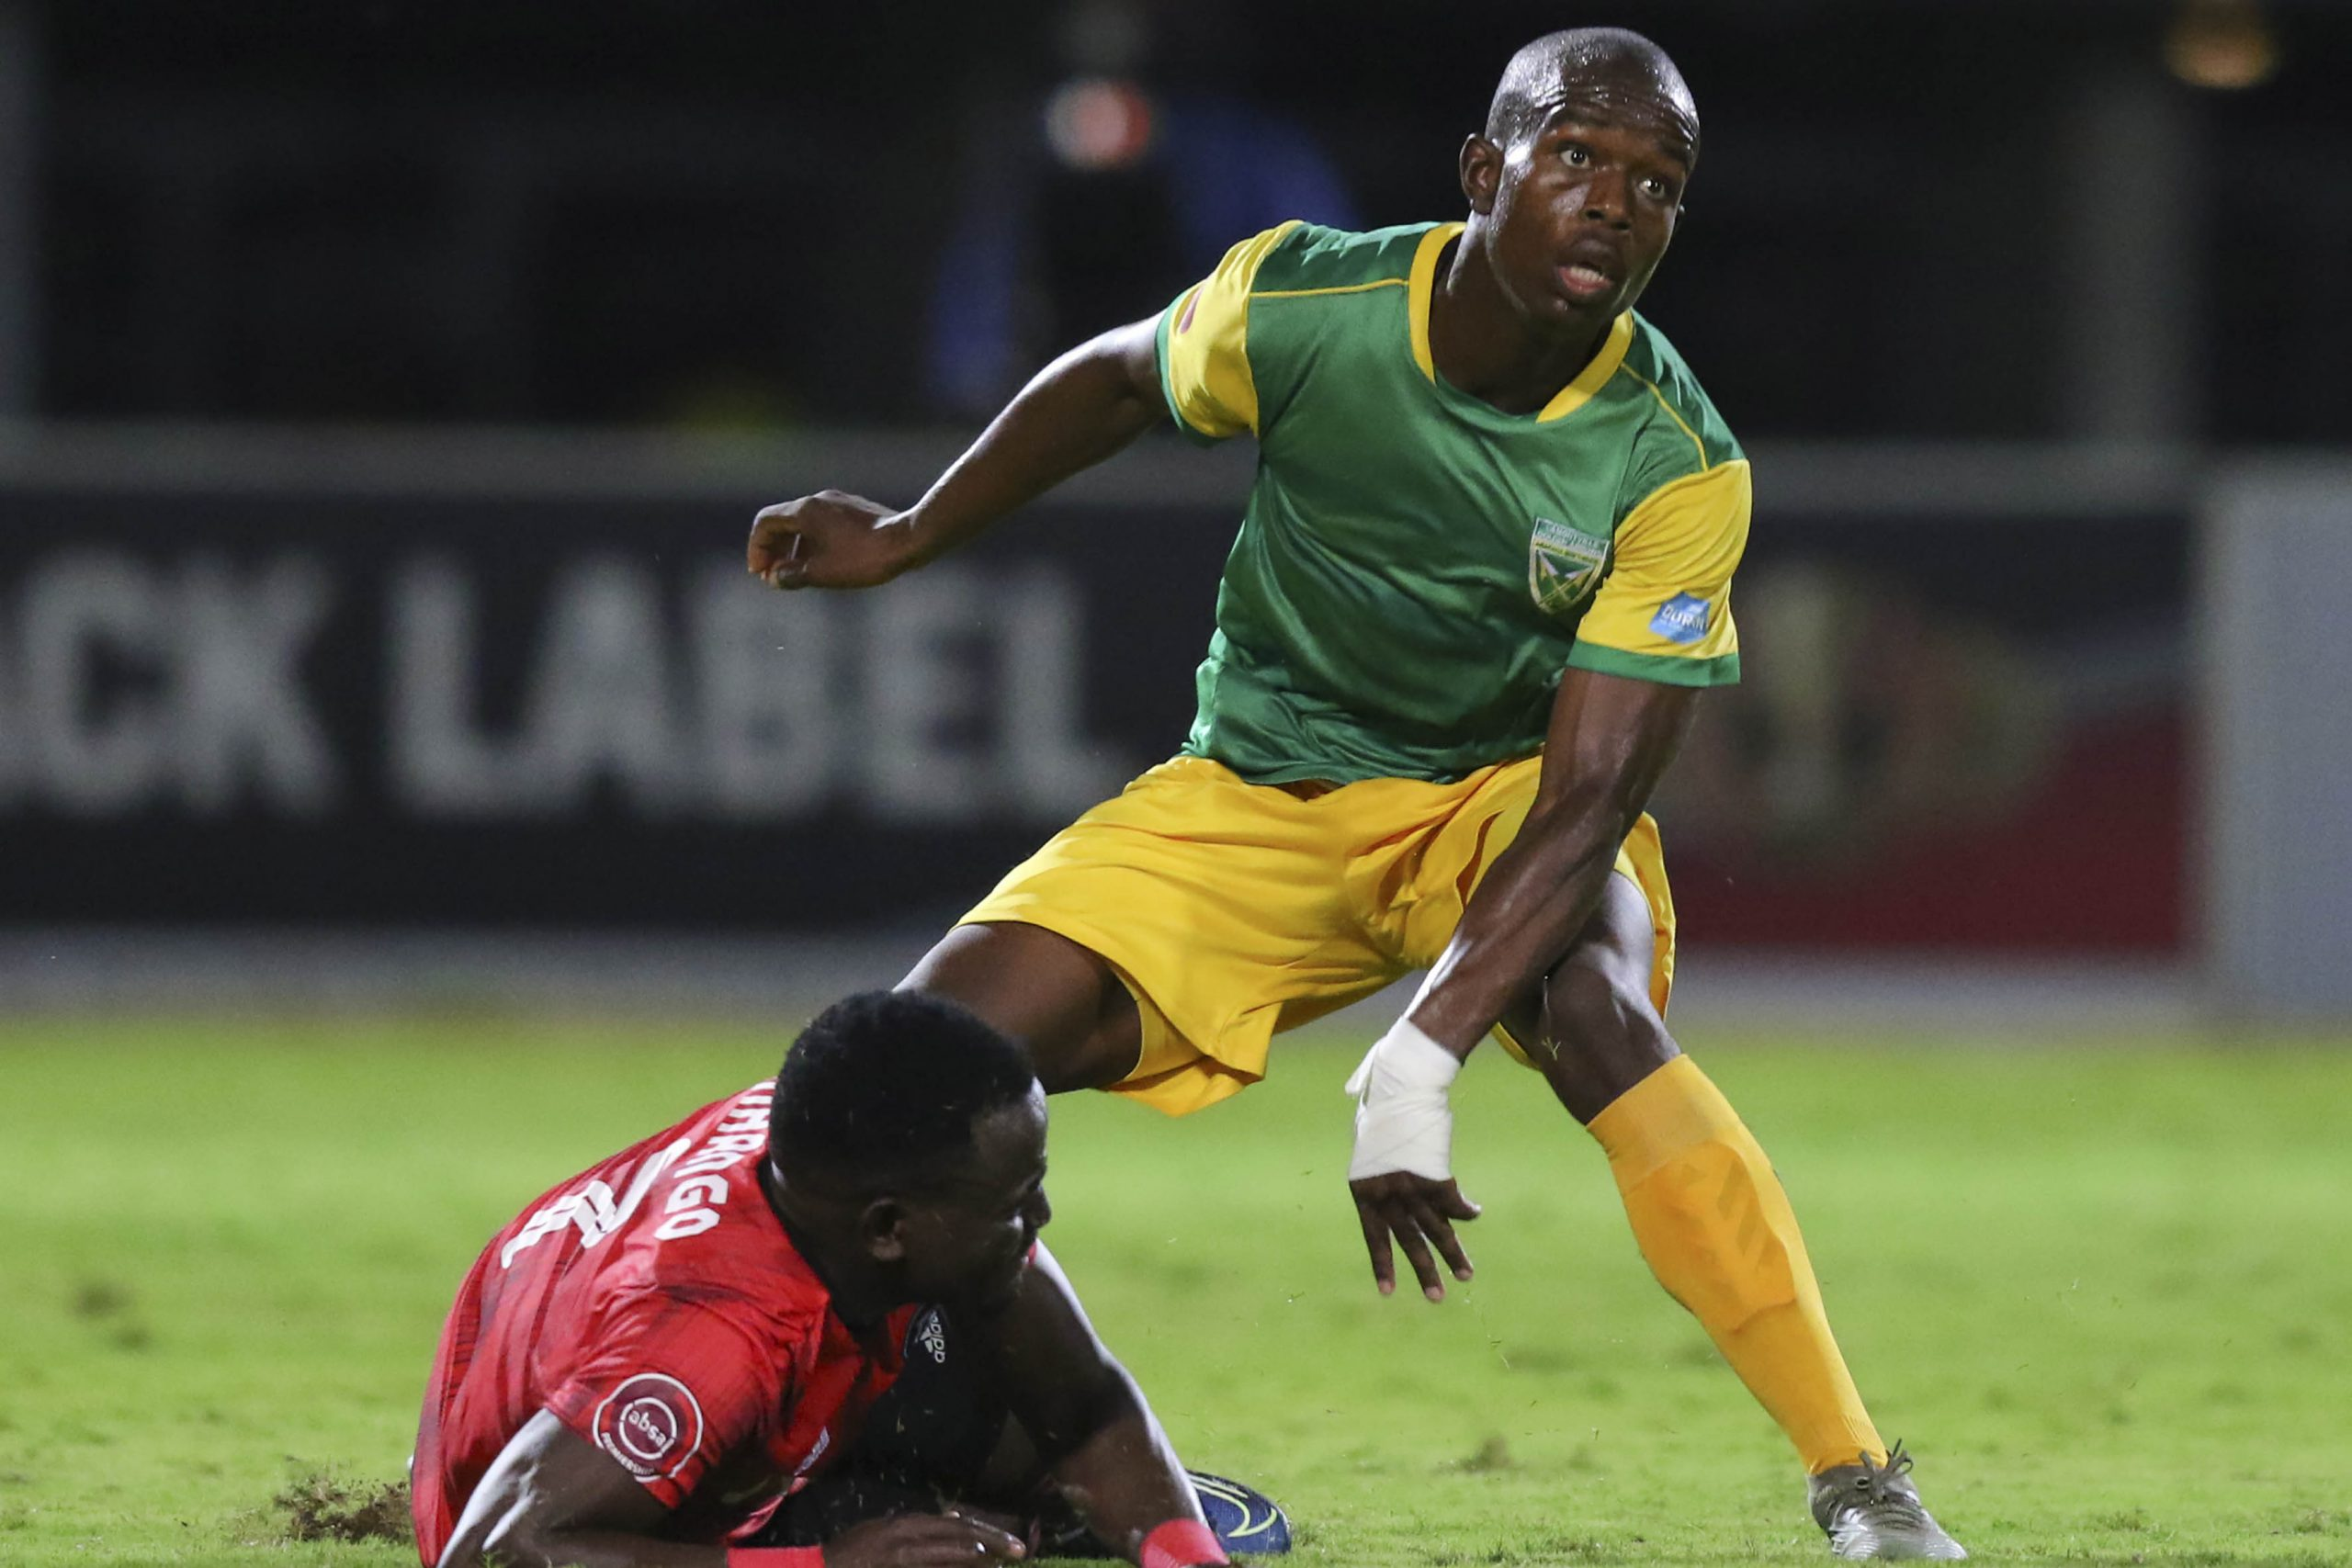 7 March 2020: Nkosinathi Sibisi of Golden Arrows and Gabadinho Mhango of Orlando Pirates during an Absa Premiership match at Sugar Ray Xulu Stadium in Durban, South Africa. (Photograph by Anesh Debiky/ Gallo Images)